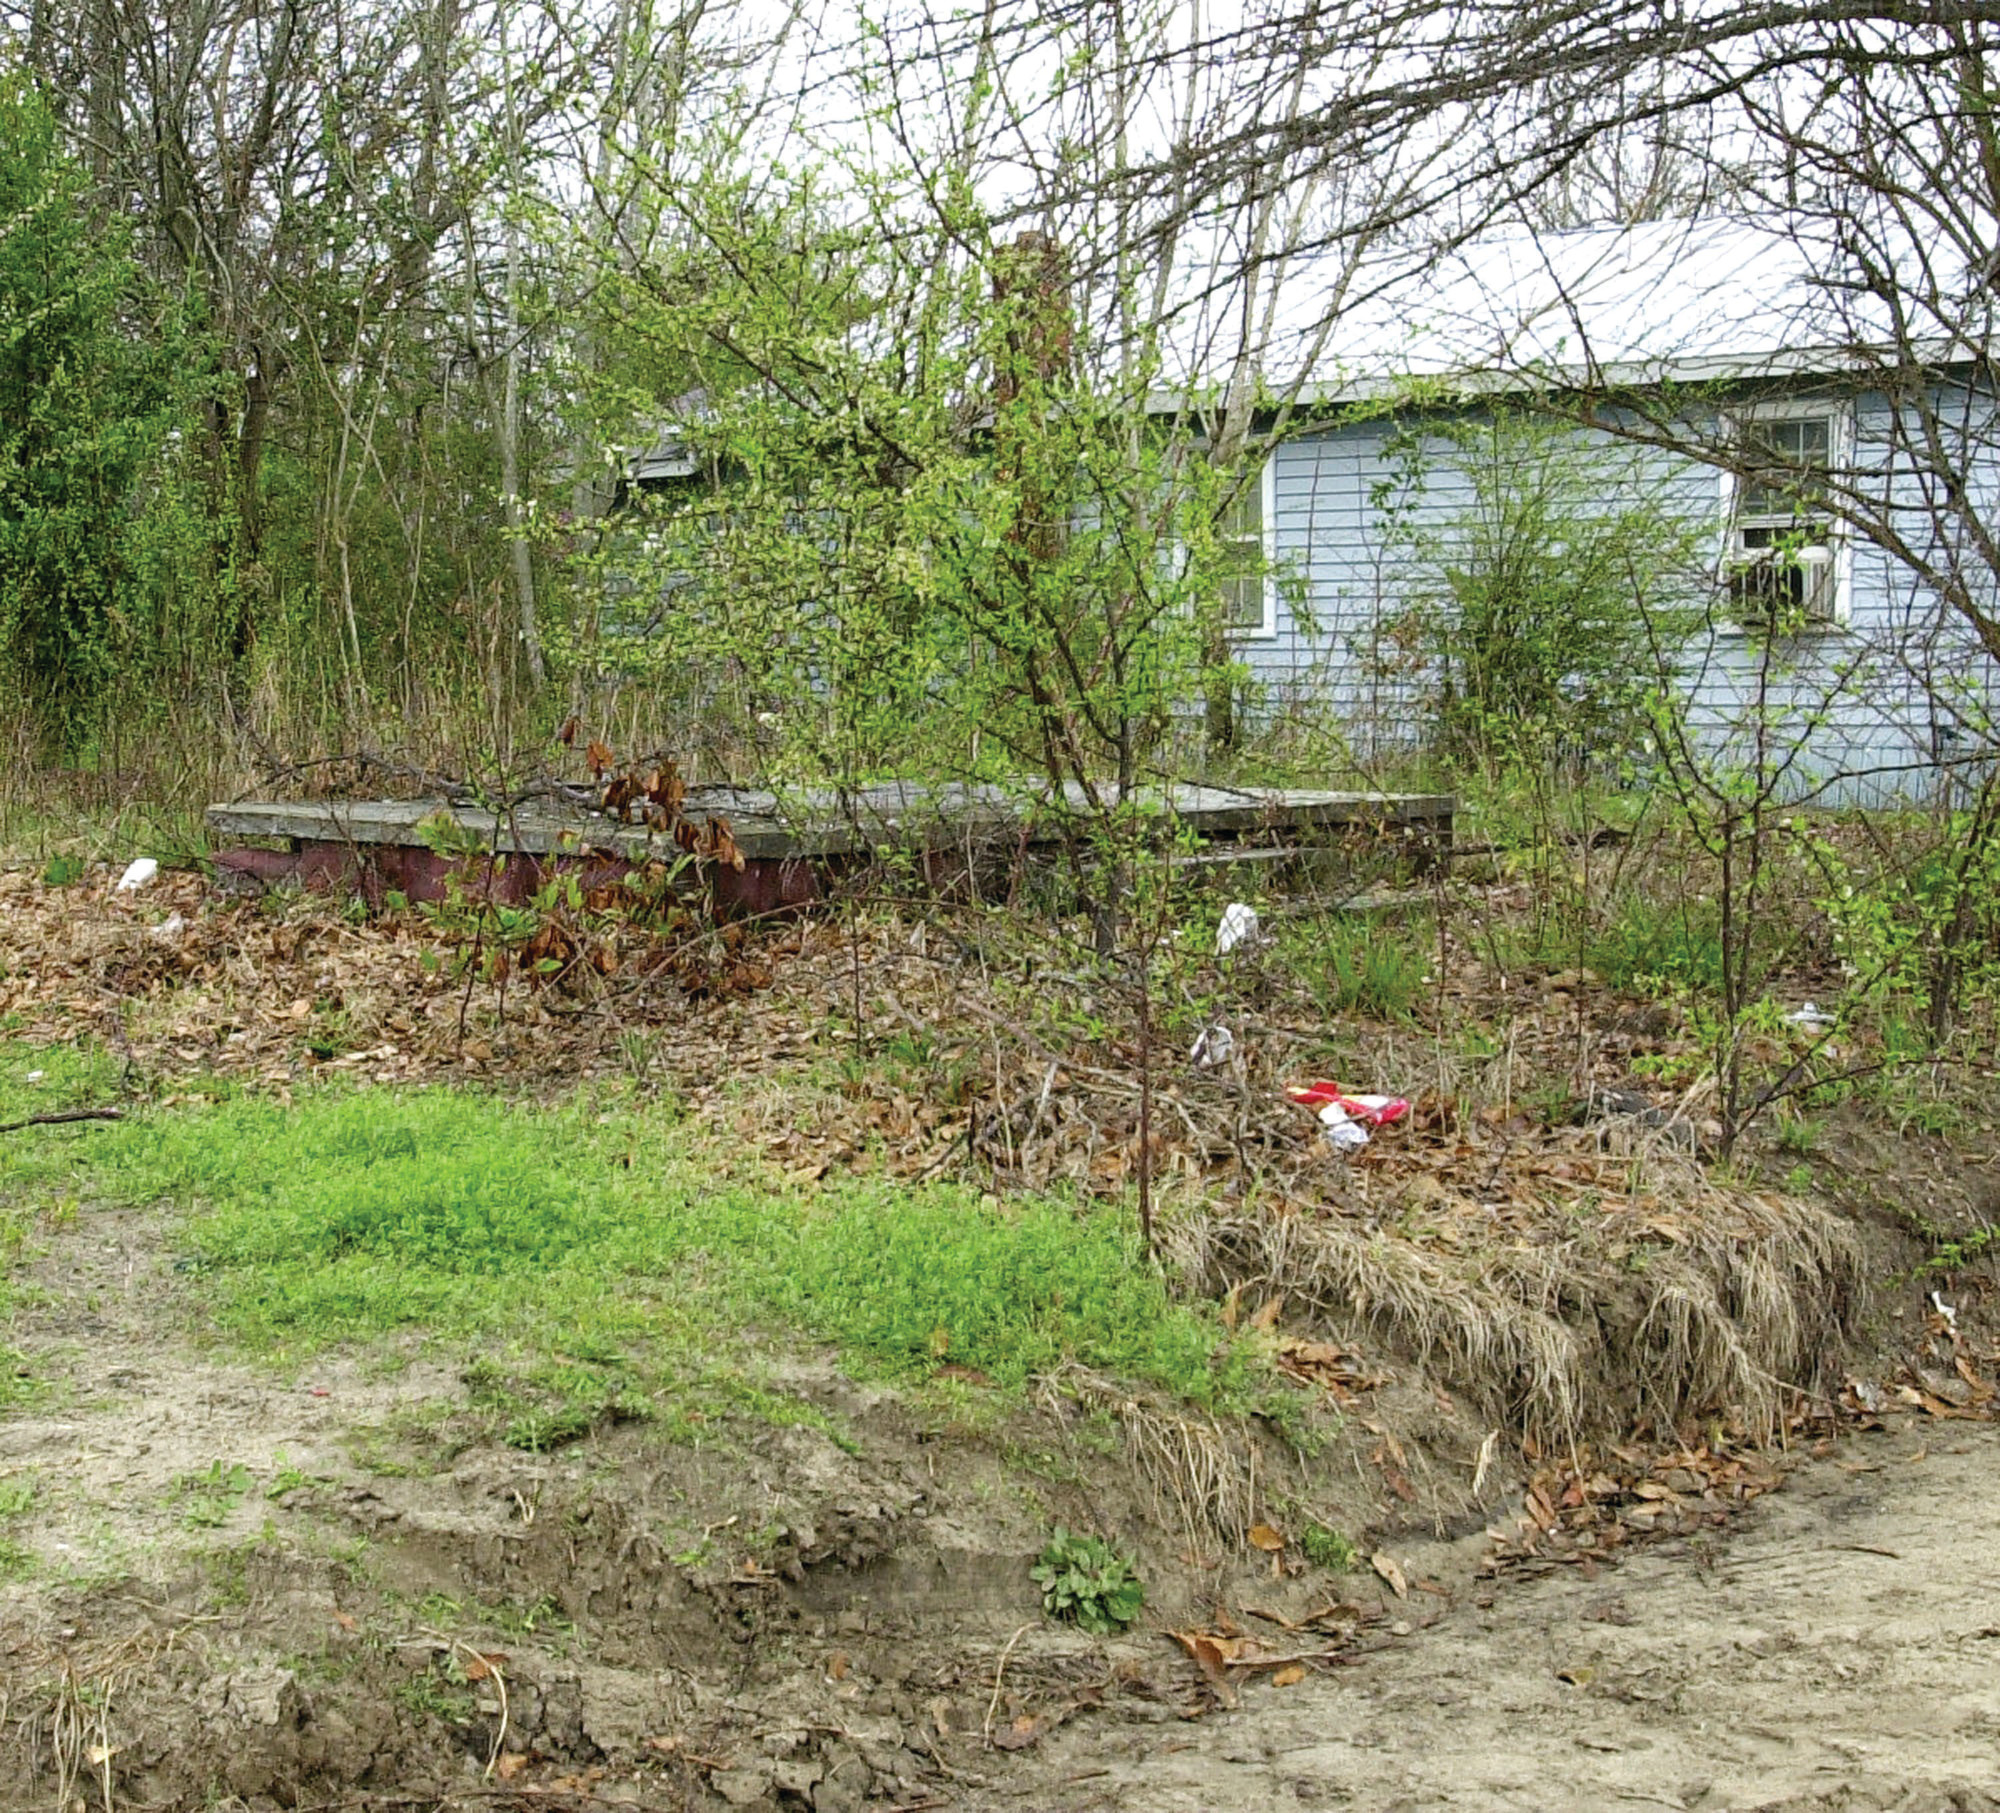 The body of 29-year-old Pamela Gregg of Sumter was discovered lying near an abandoned house in the middle of Northwestern Avenue, a formerly dirt road running behind Logan Park, on March 17, 2003.